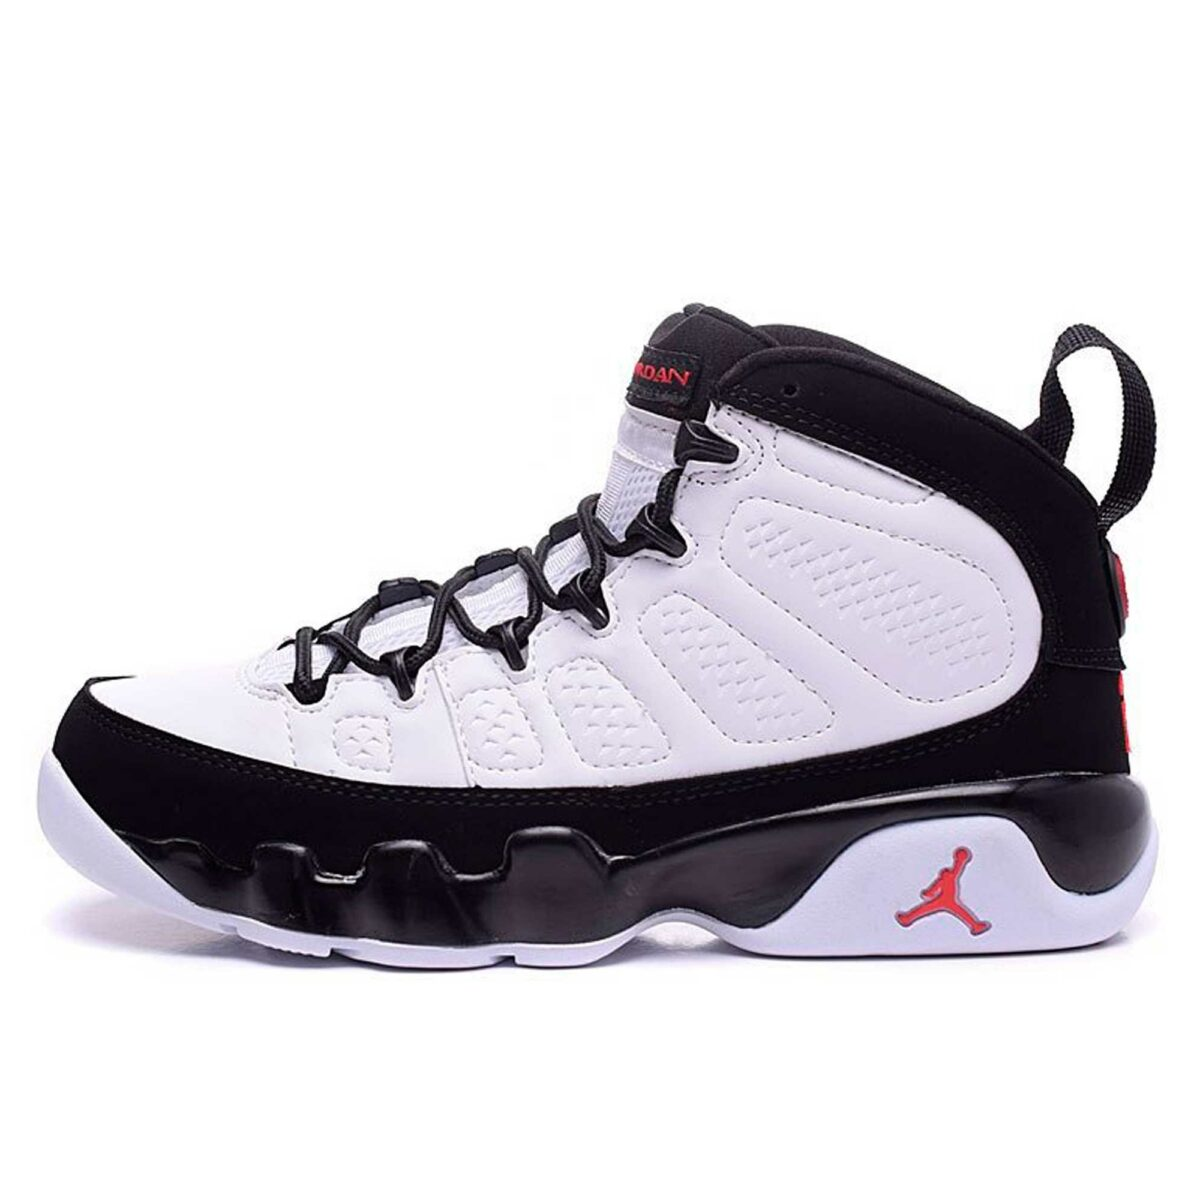 nike air Jordan 9 IX retro Space Jam white black302370_112 купить